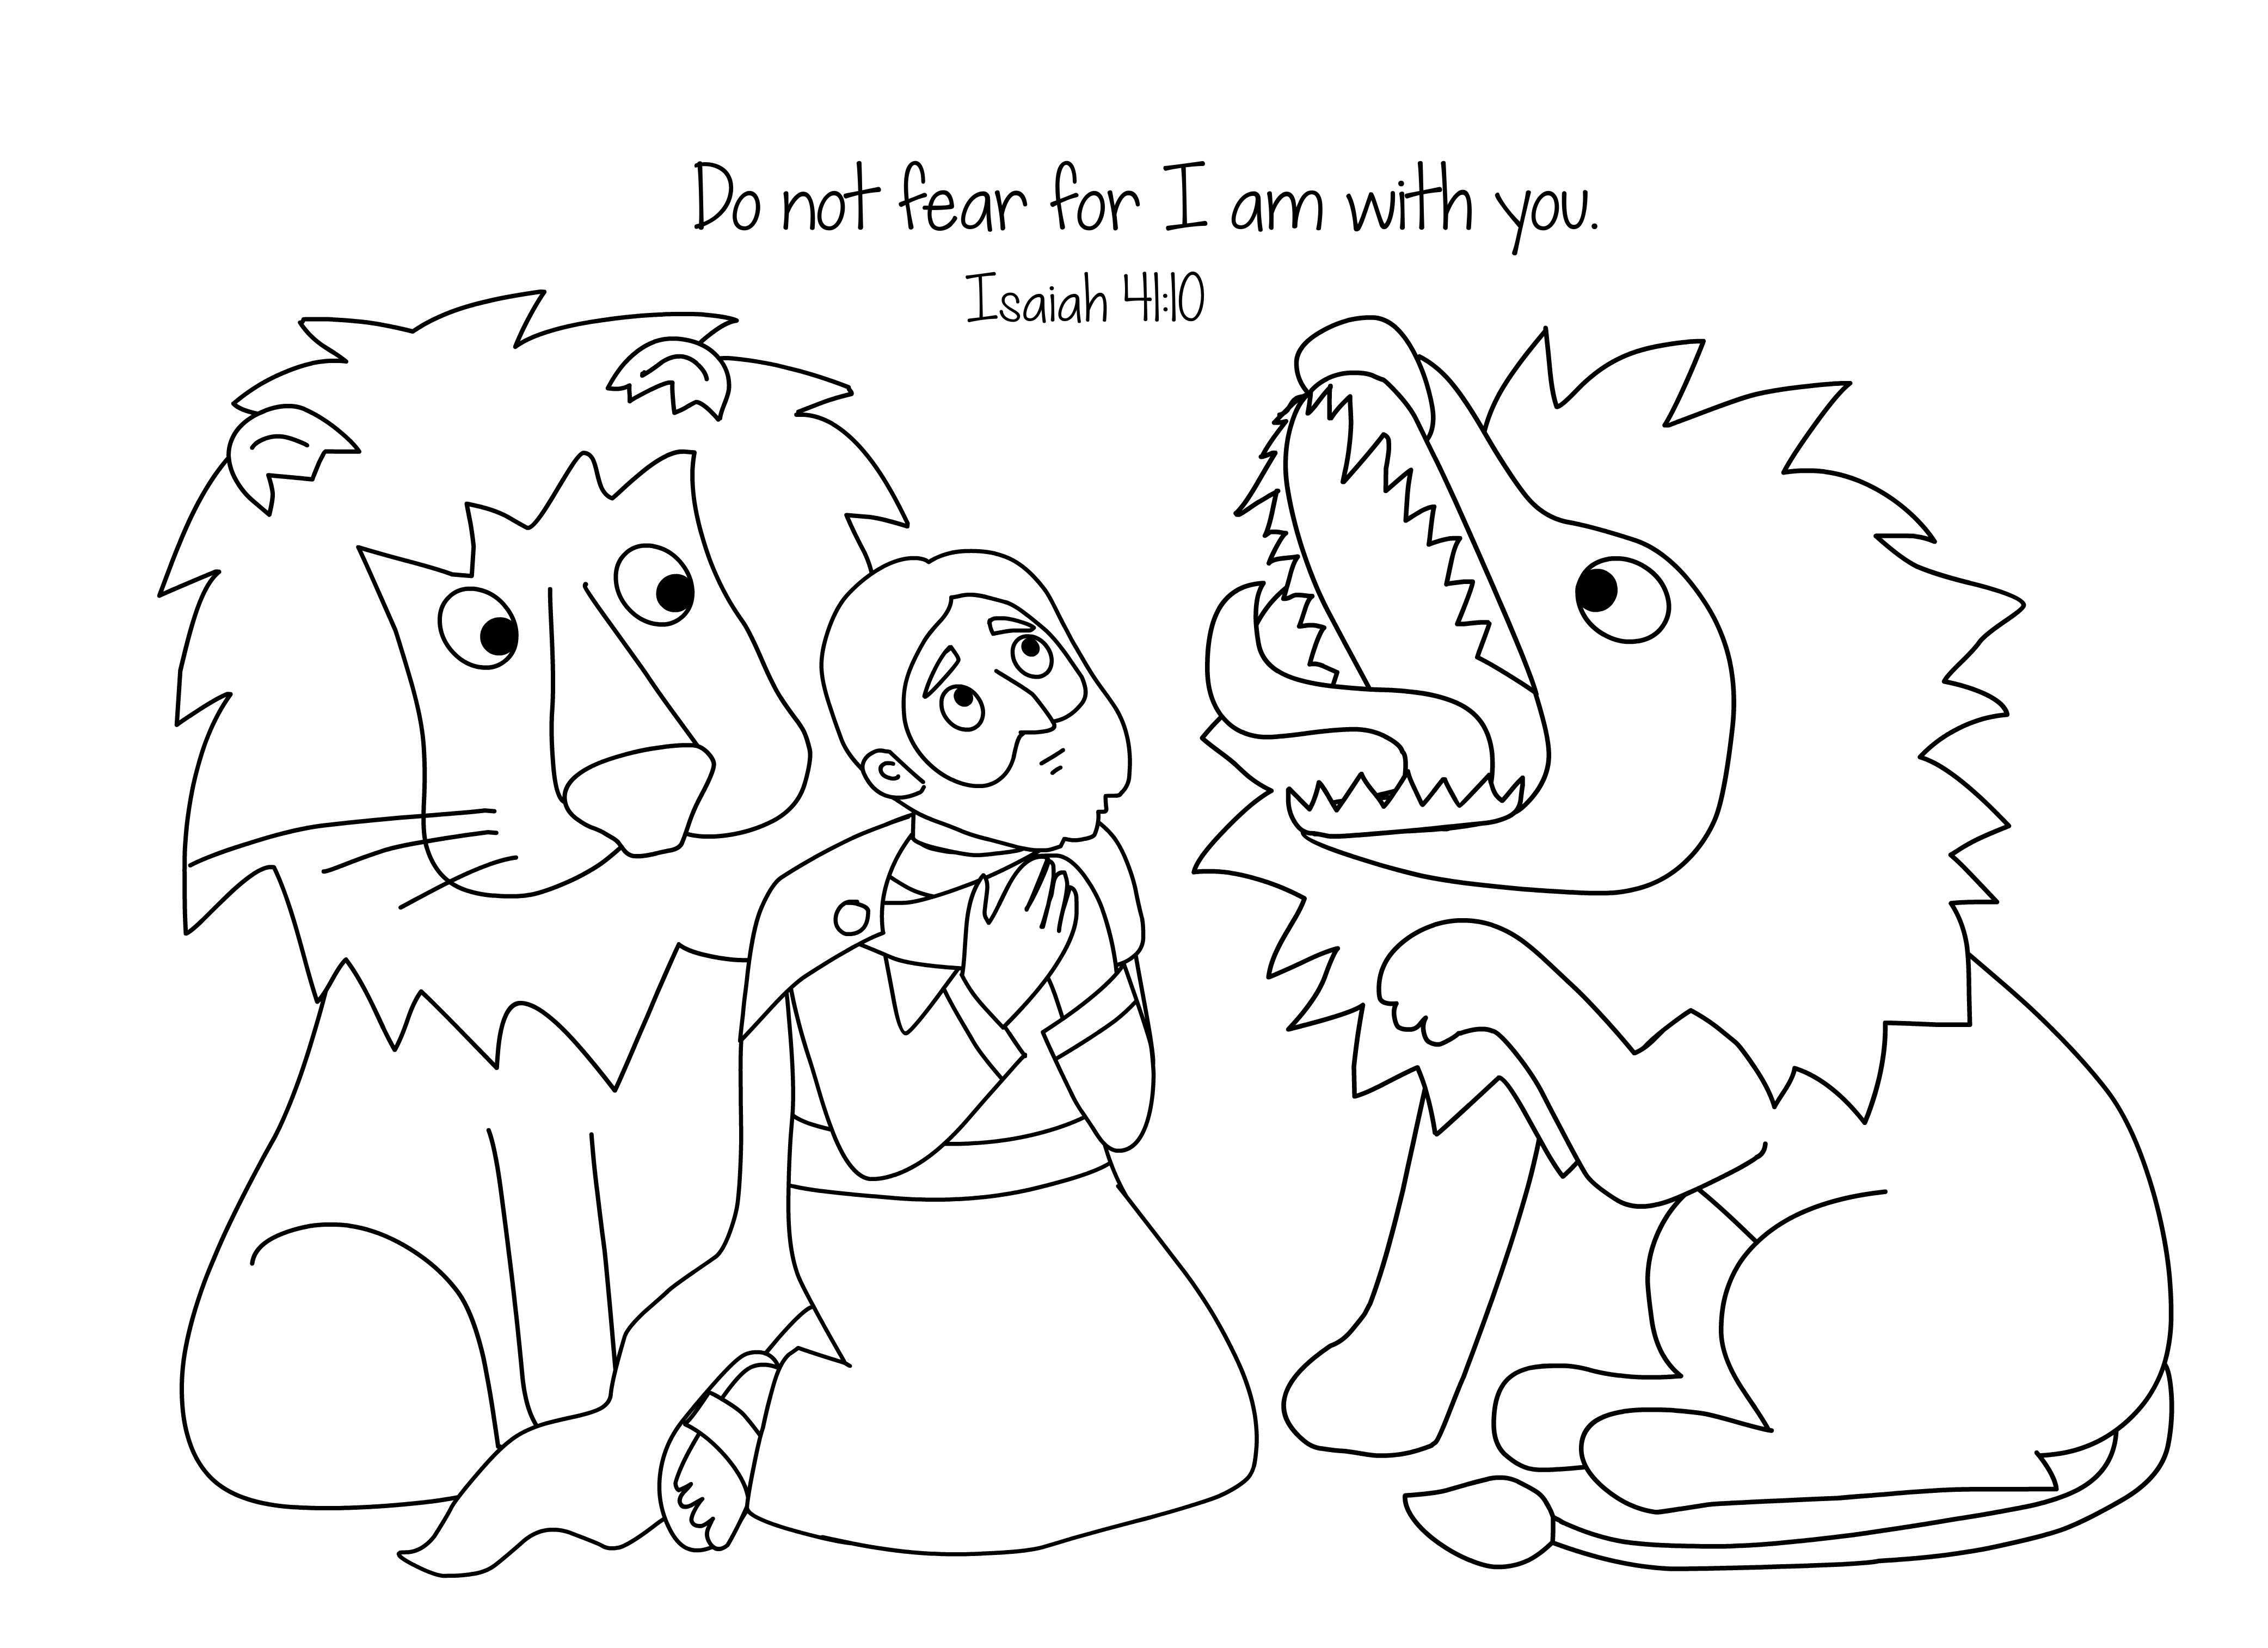 Coloring Pages ~ Freeible Story Coloring Pages Perfect Toy - Free Printable Bible Story Coloring Pages